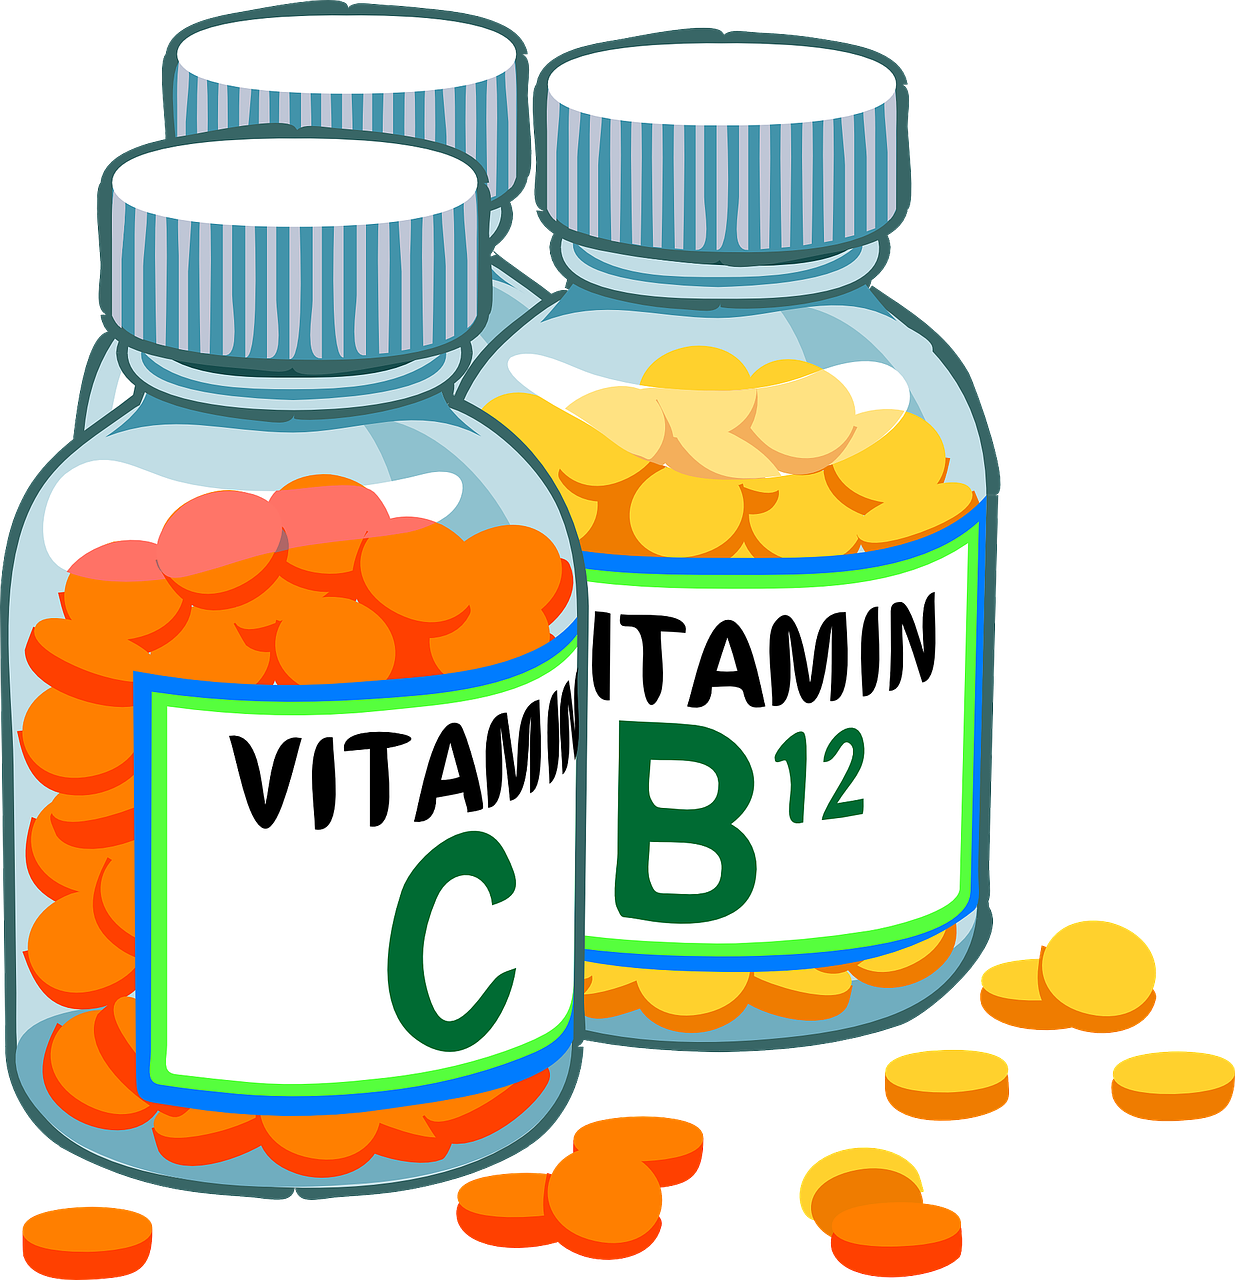 illustrated vitamin C and vitamin b12 bottles